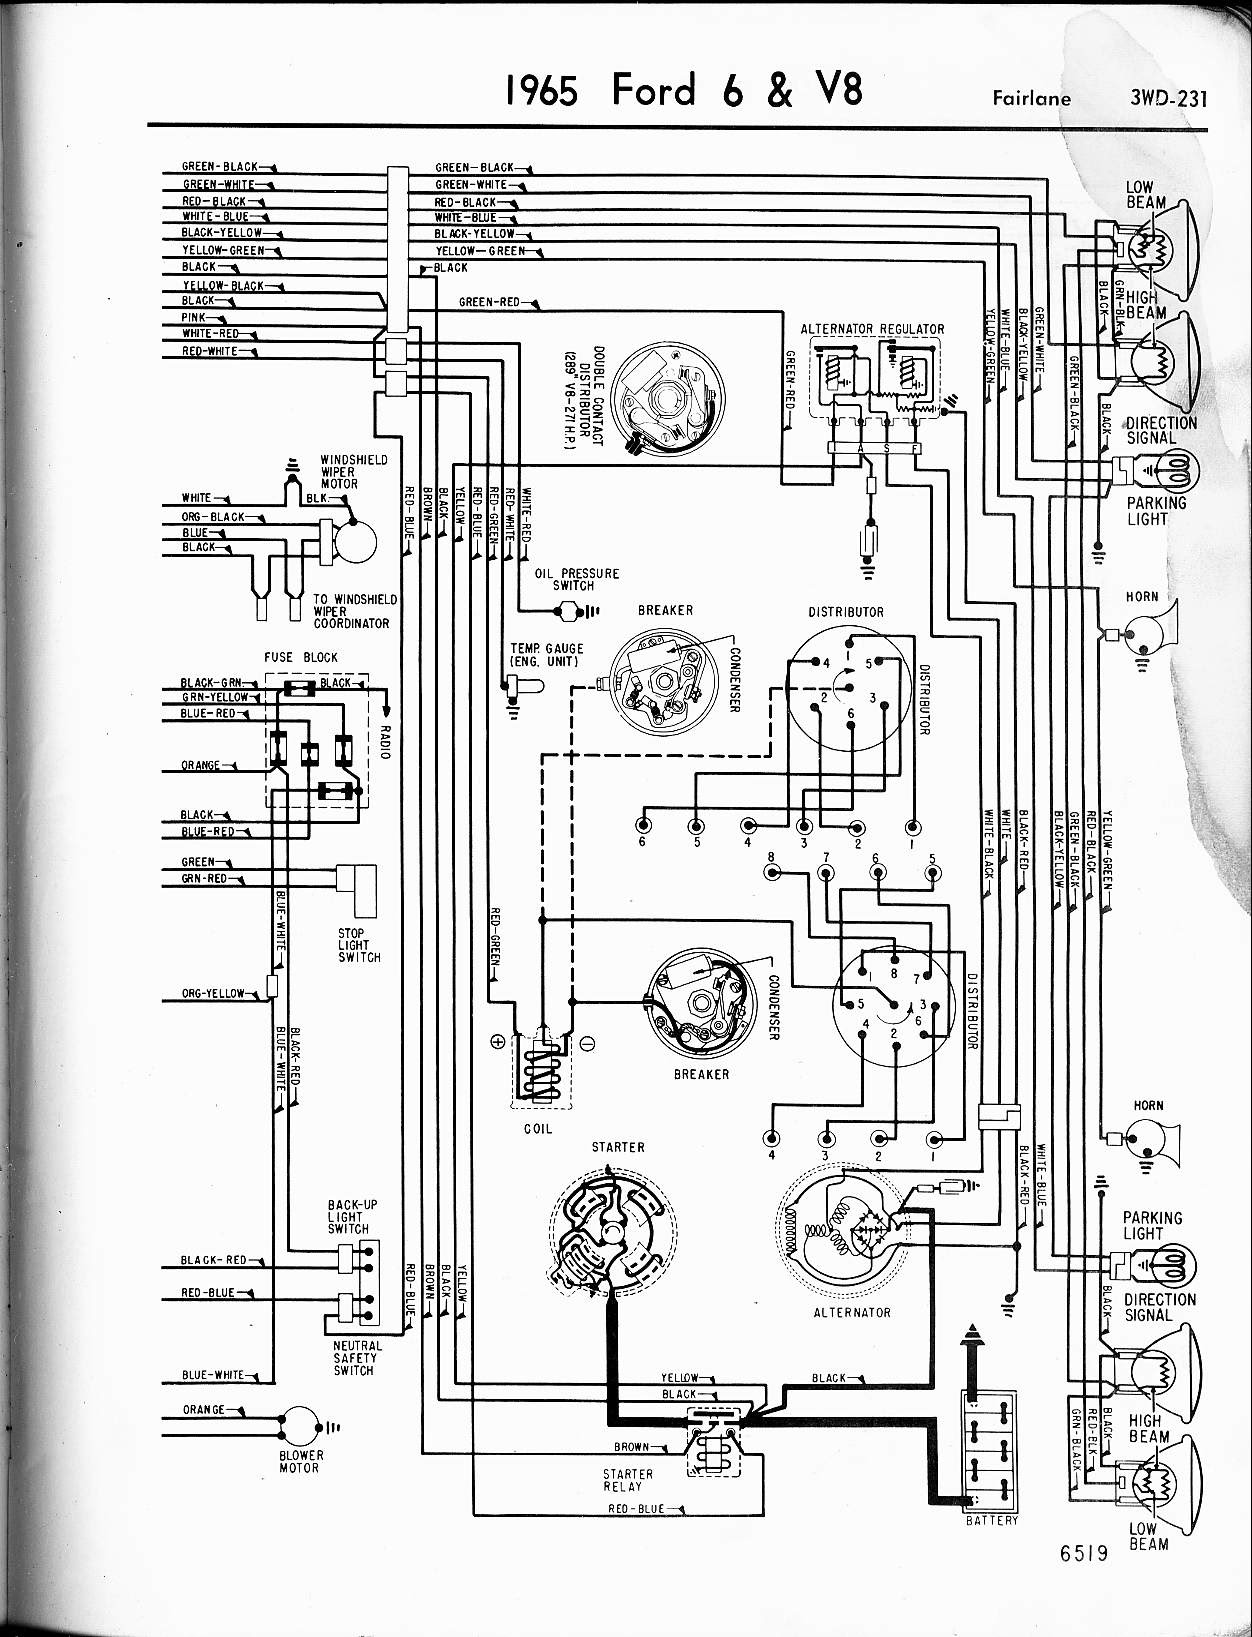 Ford Generator Wiring Diagram from lh5.googleusercontent.com